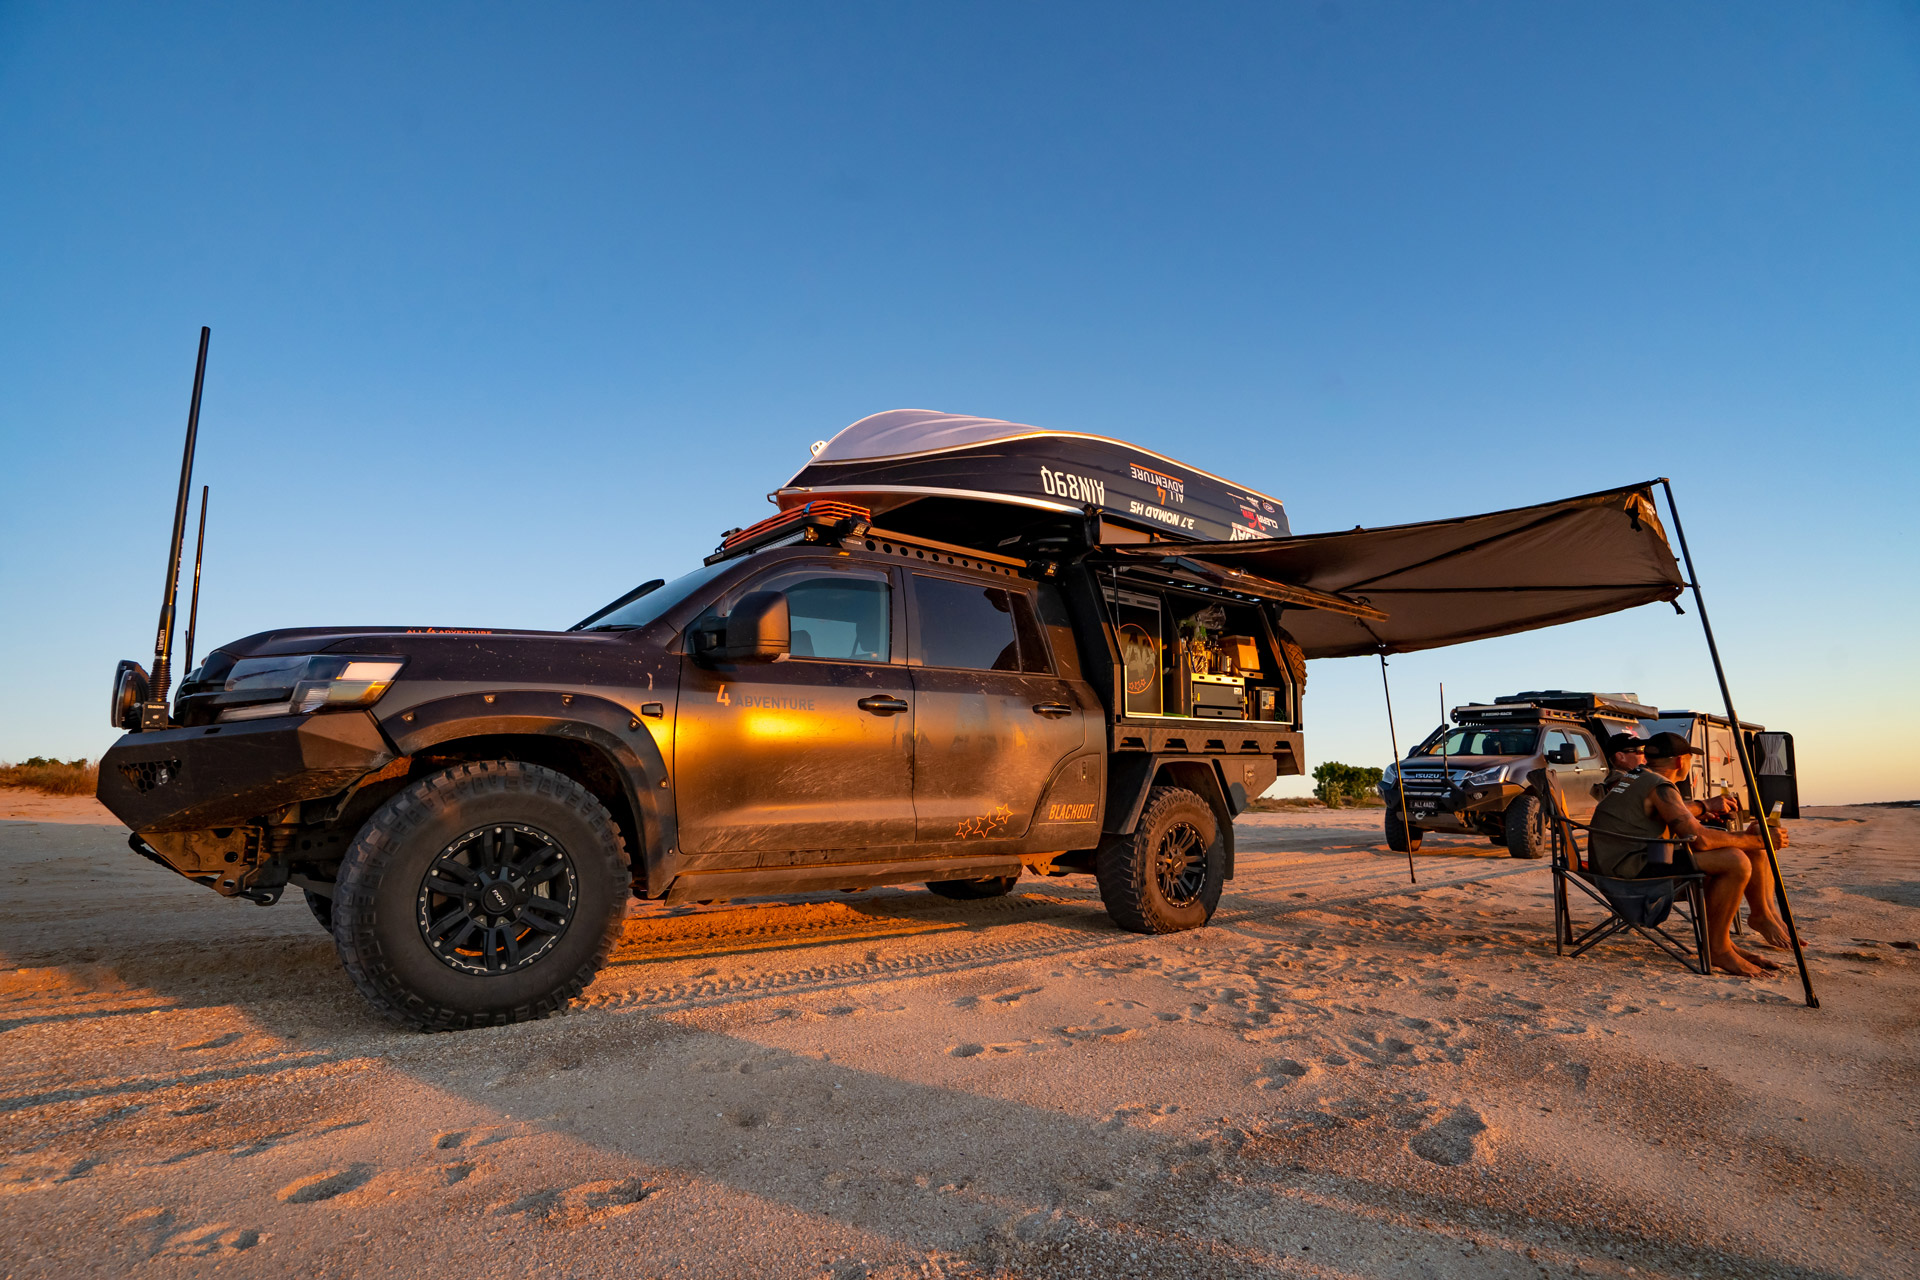 All 4 Adventure LandCruiser 200 Series with ROH Vapour wheels on the beach at sunset with Jase and Simon